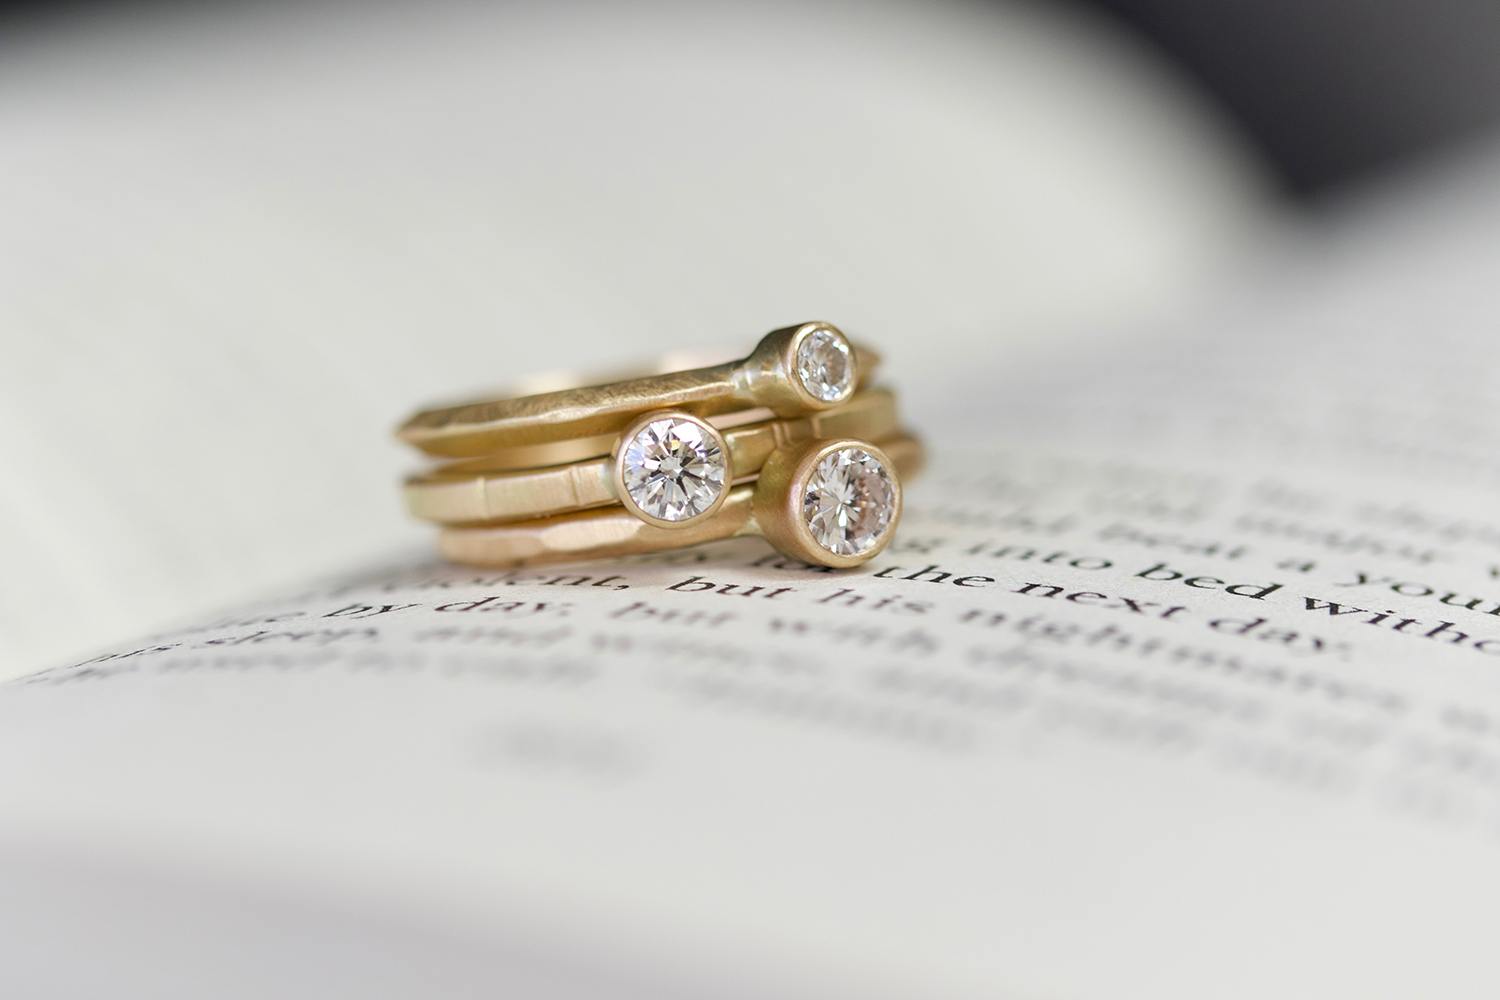 diamond rings on book small.jpg